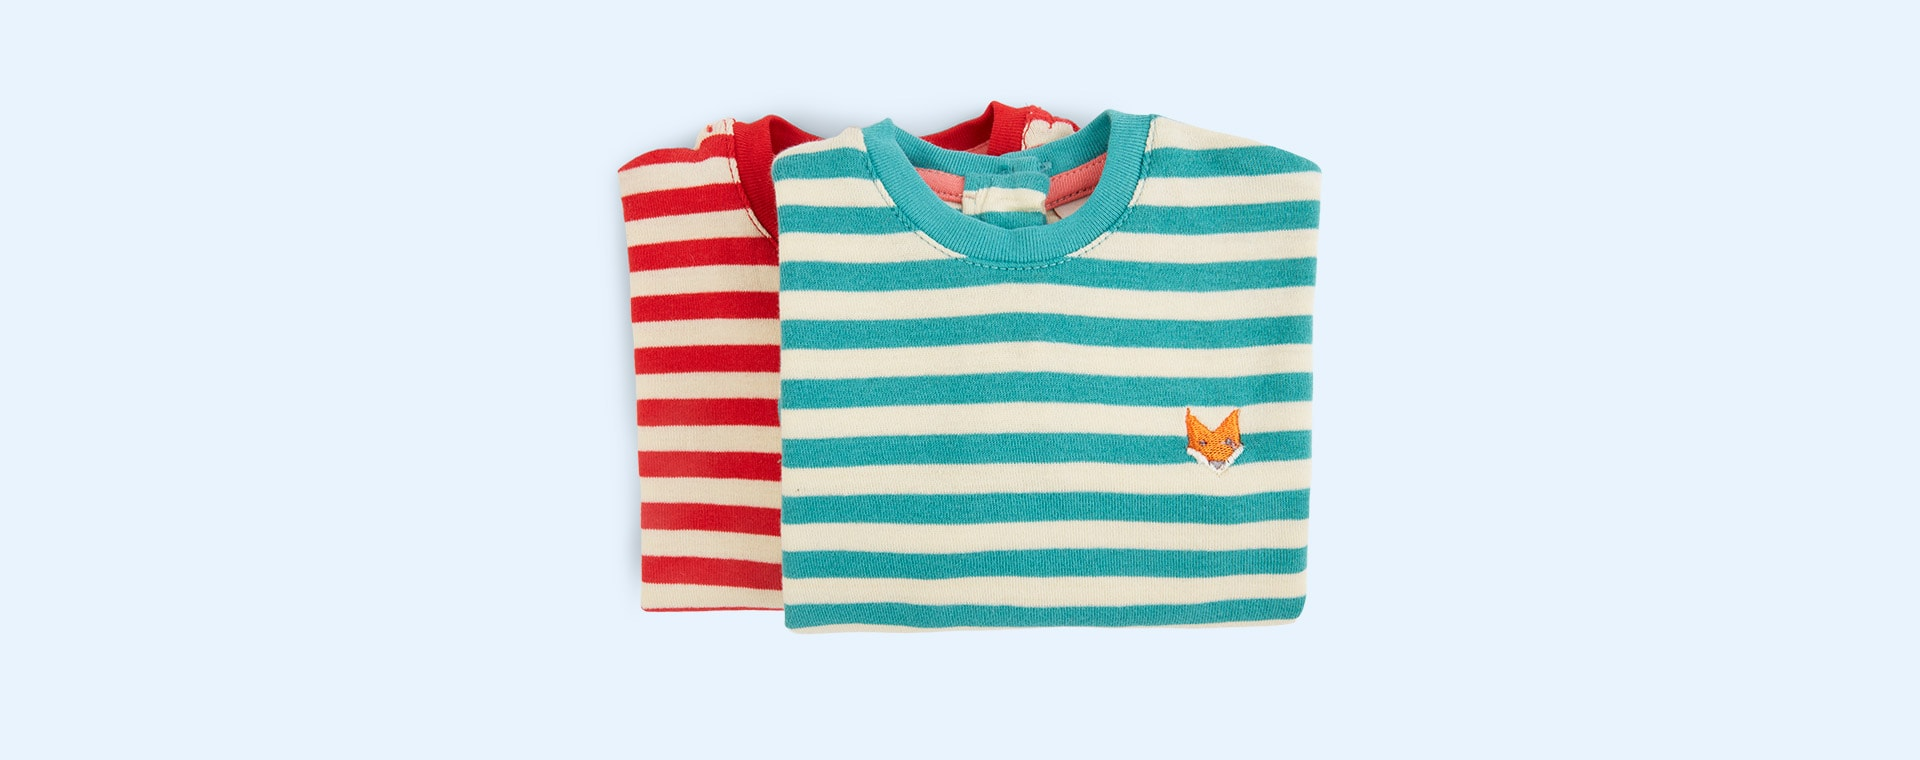 Red/Teal Tootsa Striped Long Sleeve Tops 2 Pack